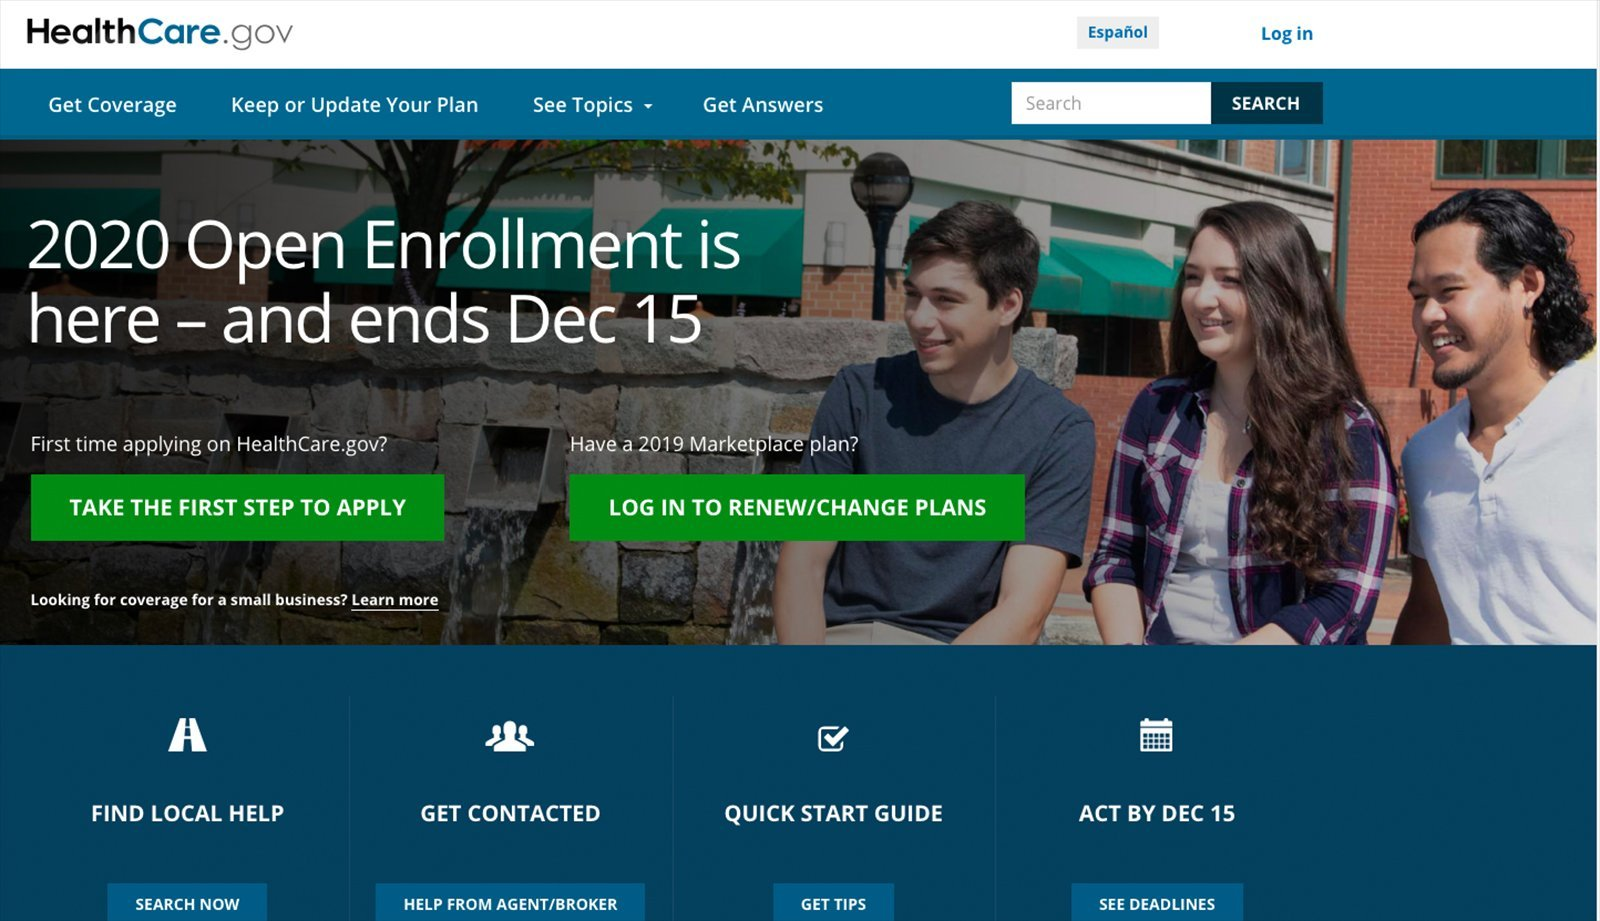 Sign-ups slip in initial days of Obamacare open enrollment